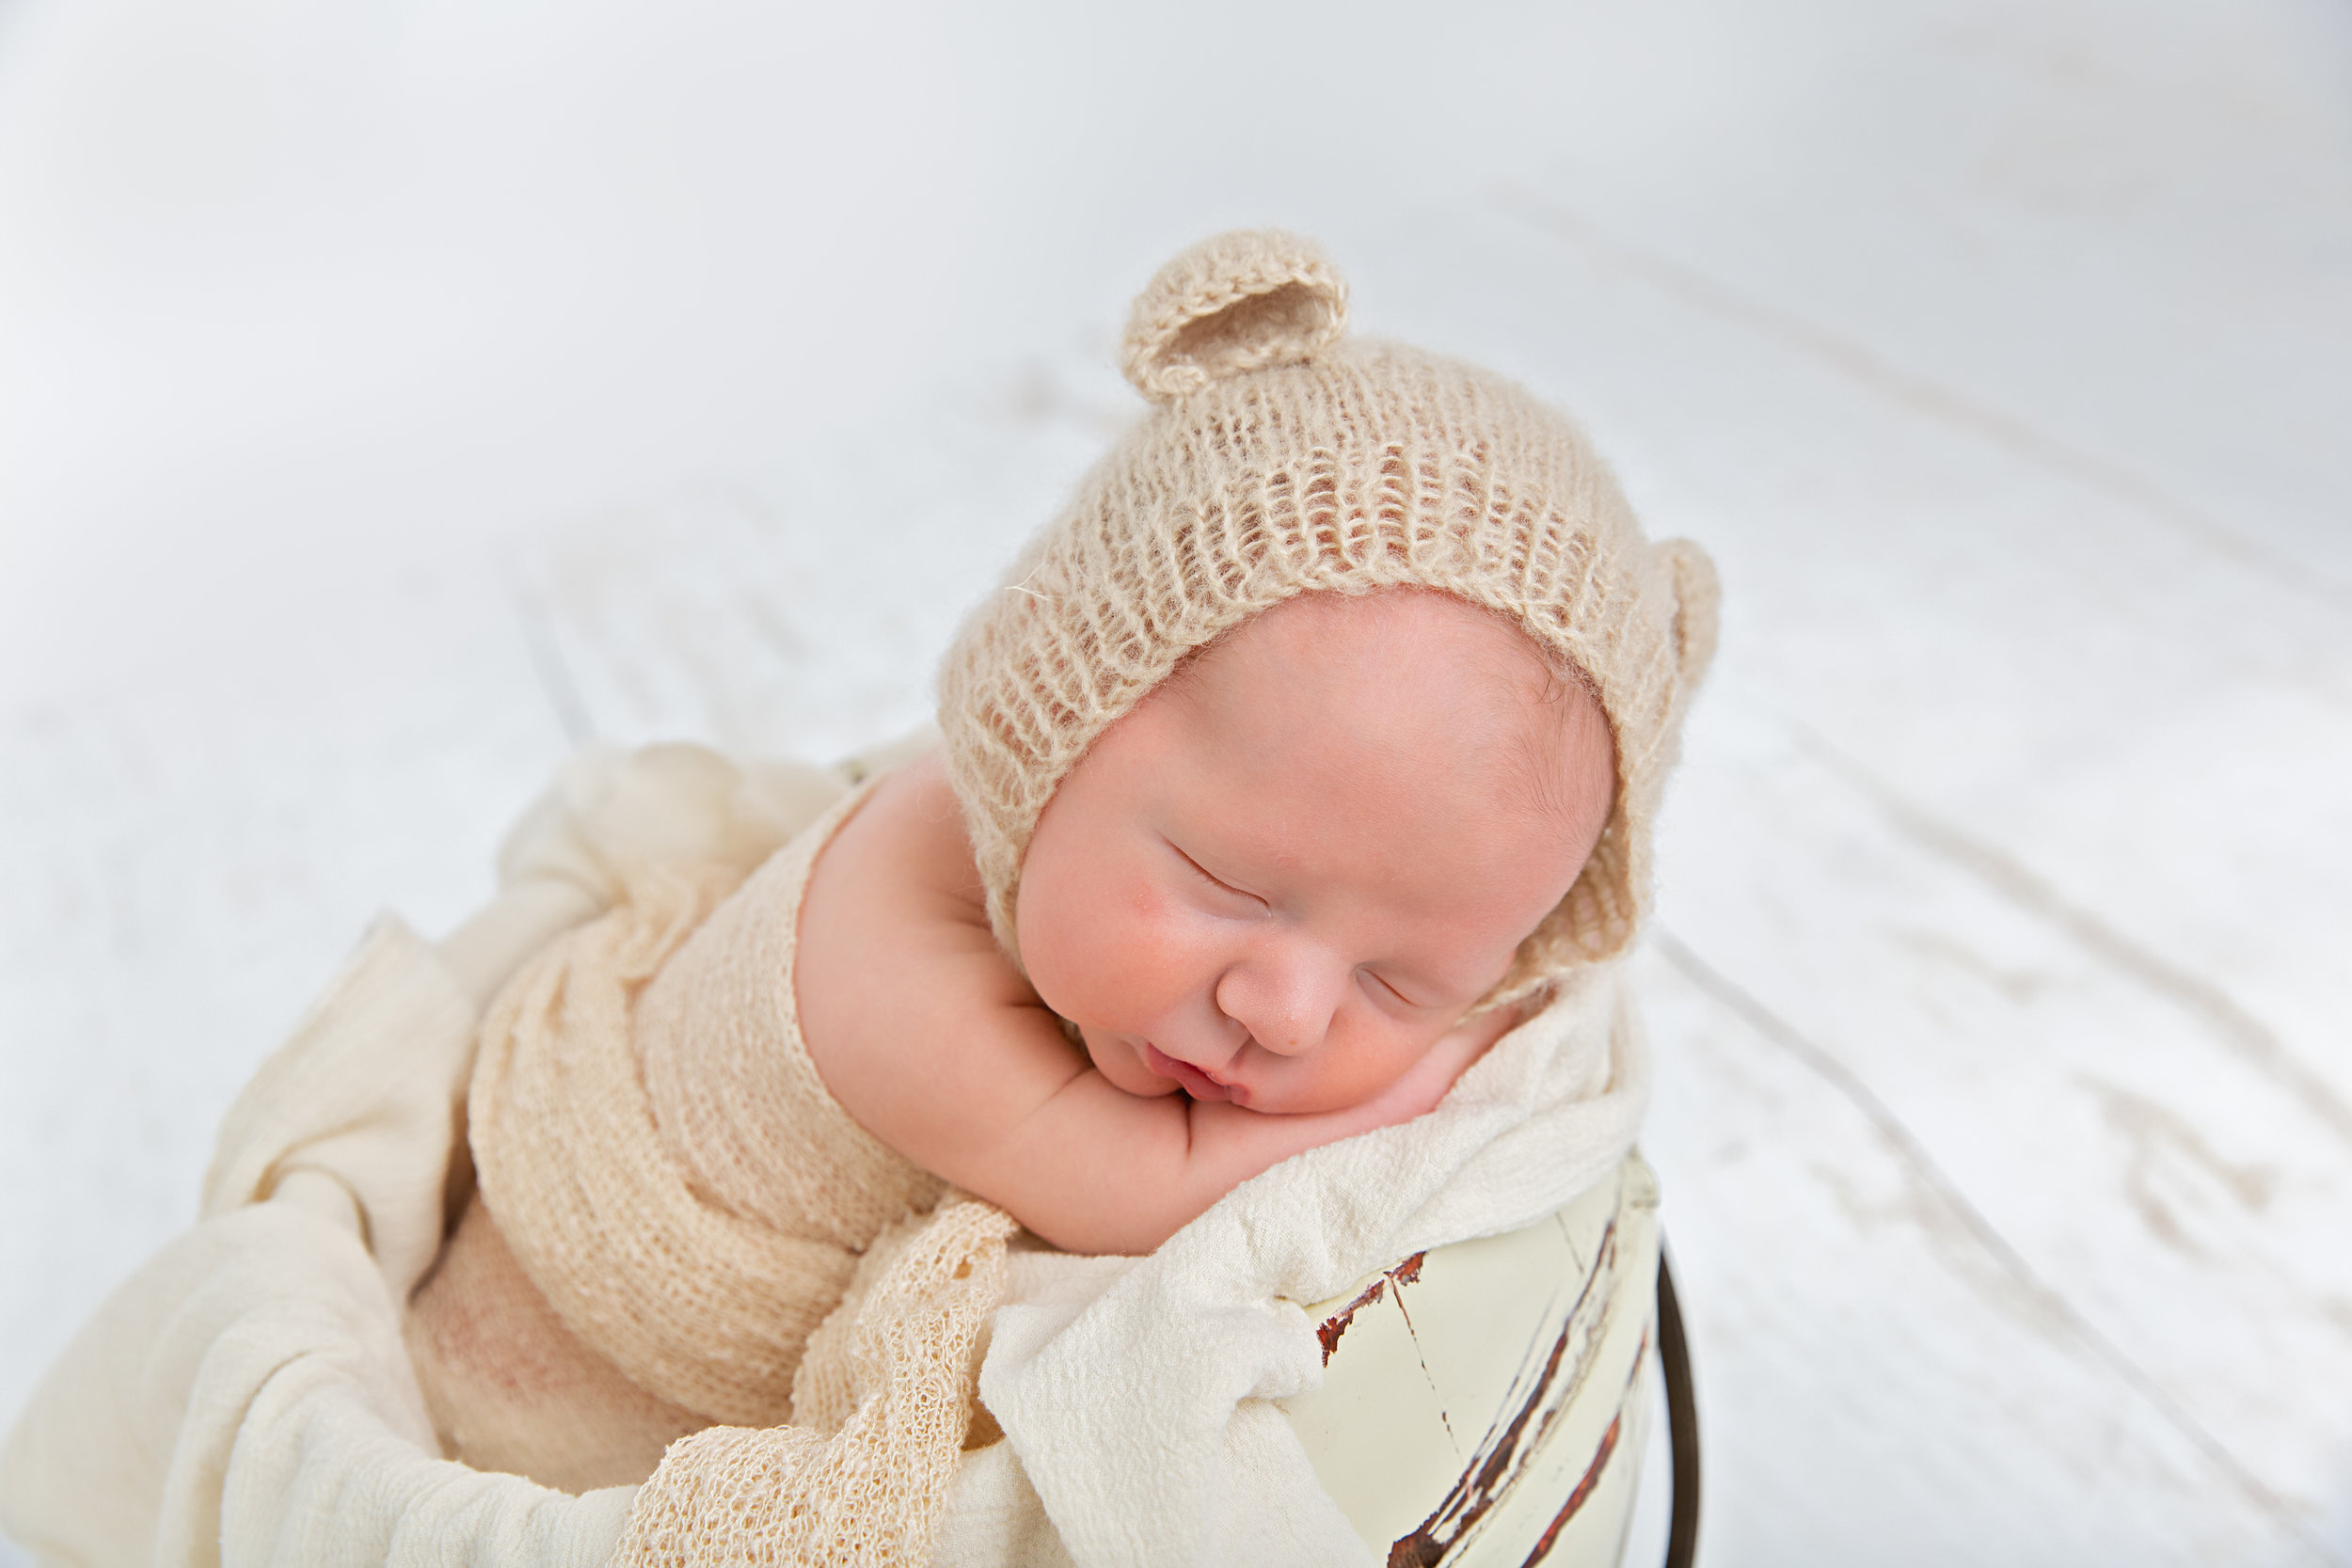 newborn baby sleeping in prop pose